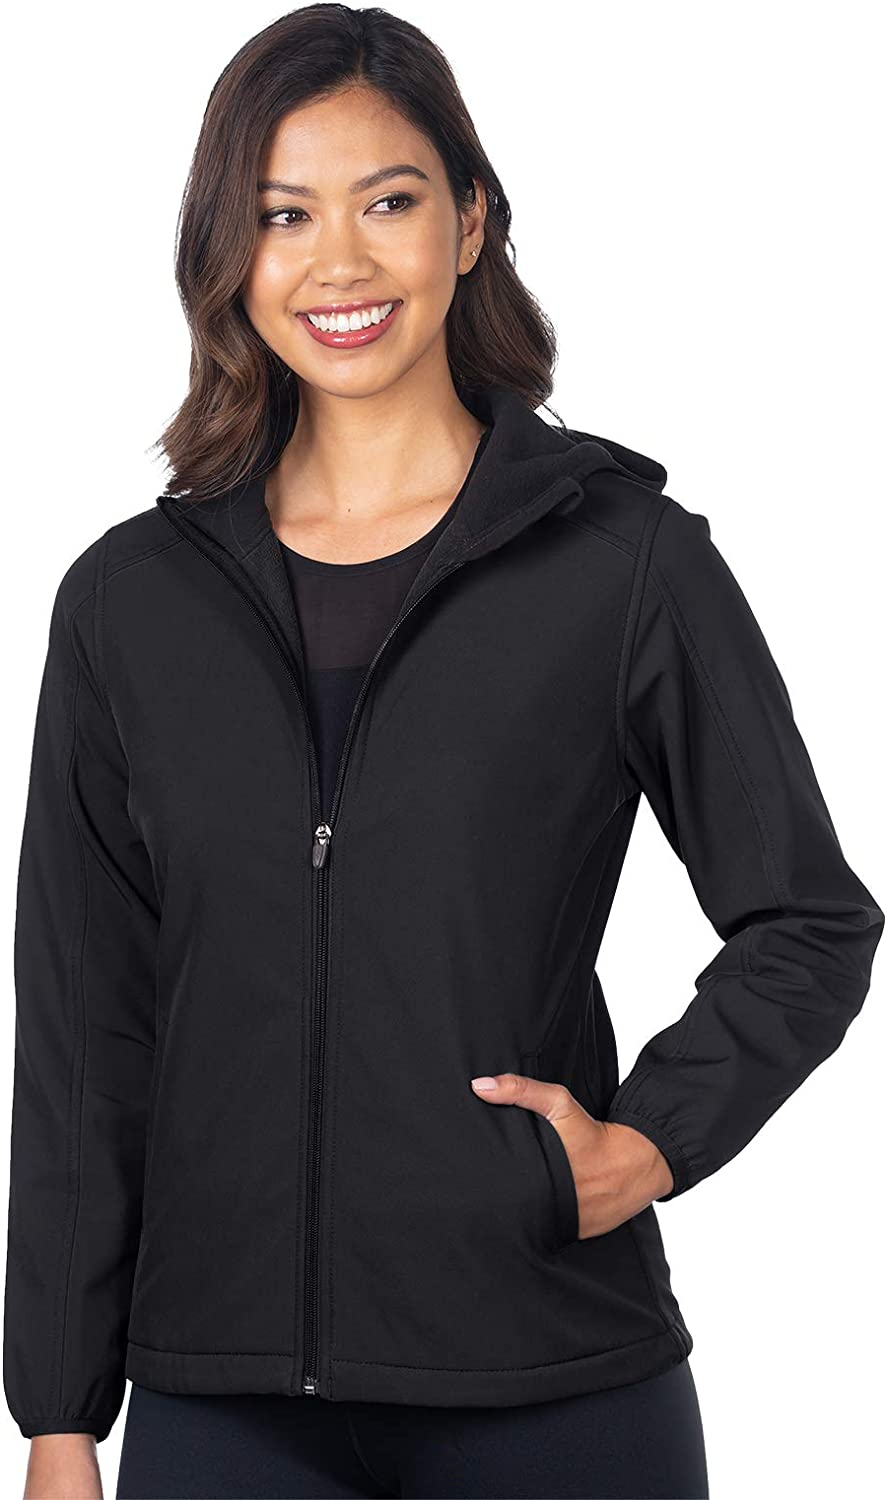 Tri-Mountain - Odessa Women's Bonded Hooded X Jacket Shell Seattle Mall Soft excellence